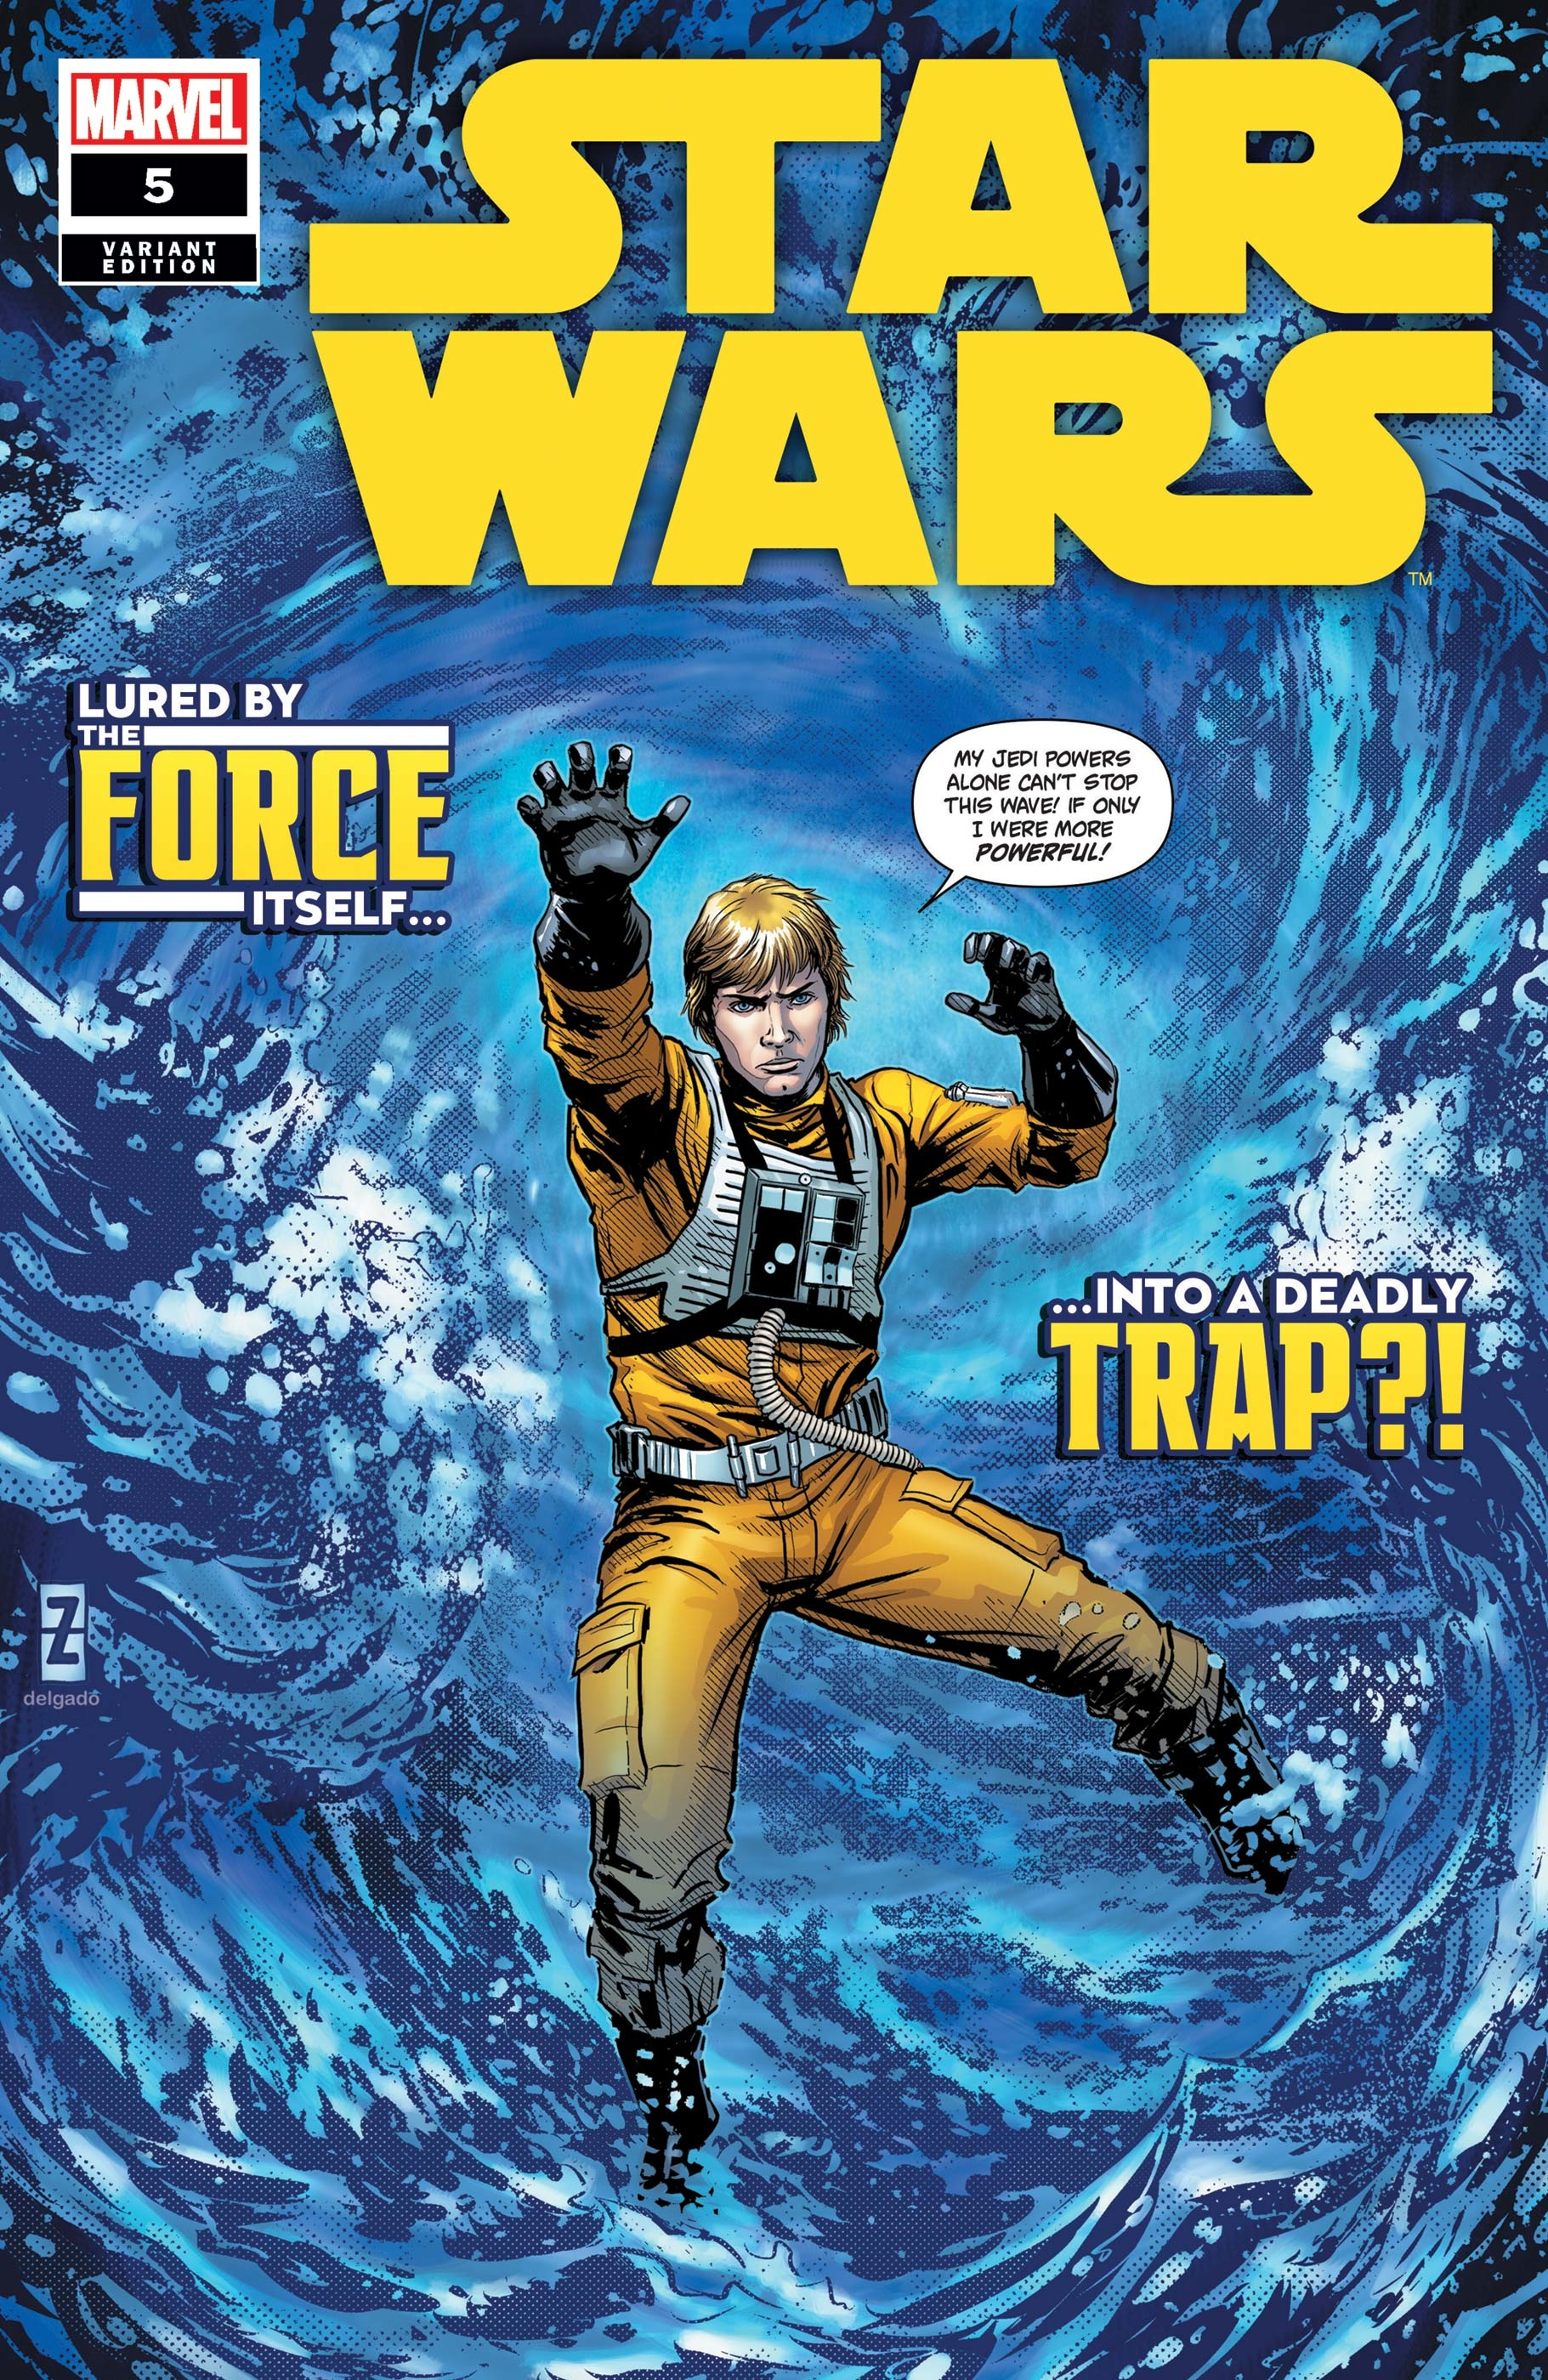 STAR WARS #5 ZIRCHER VAR